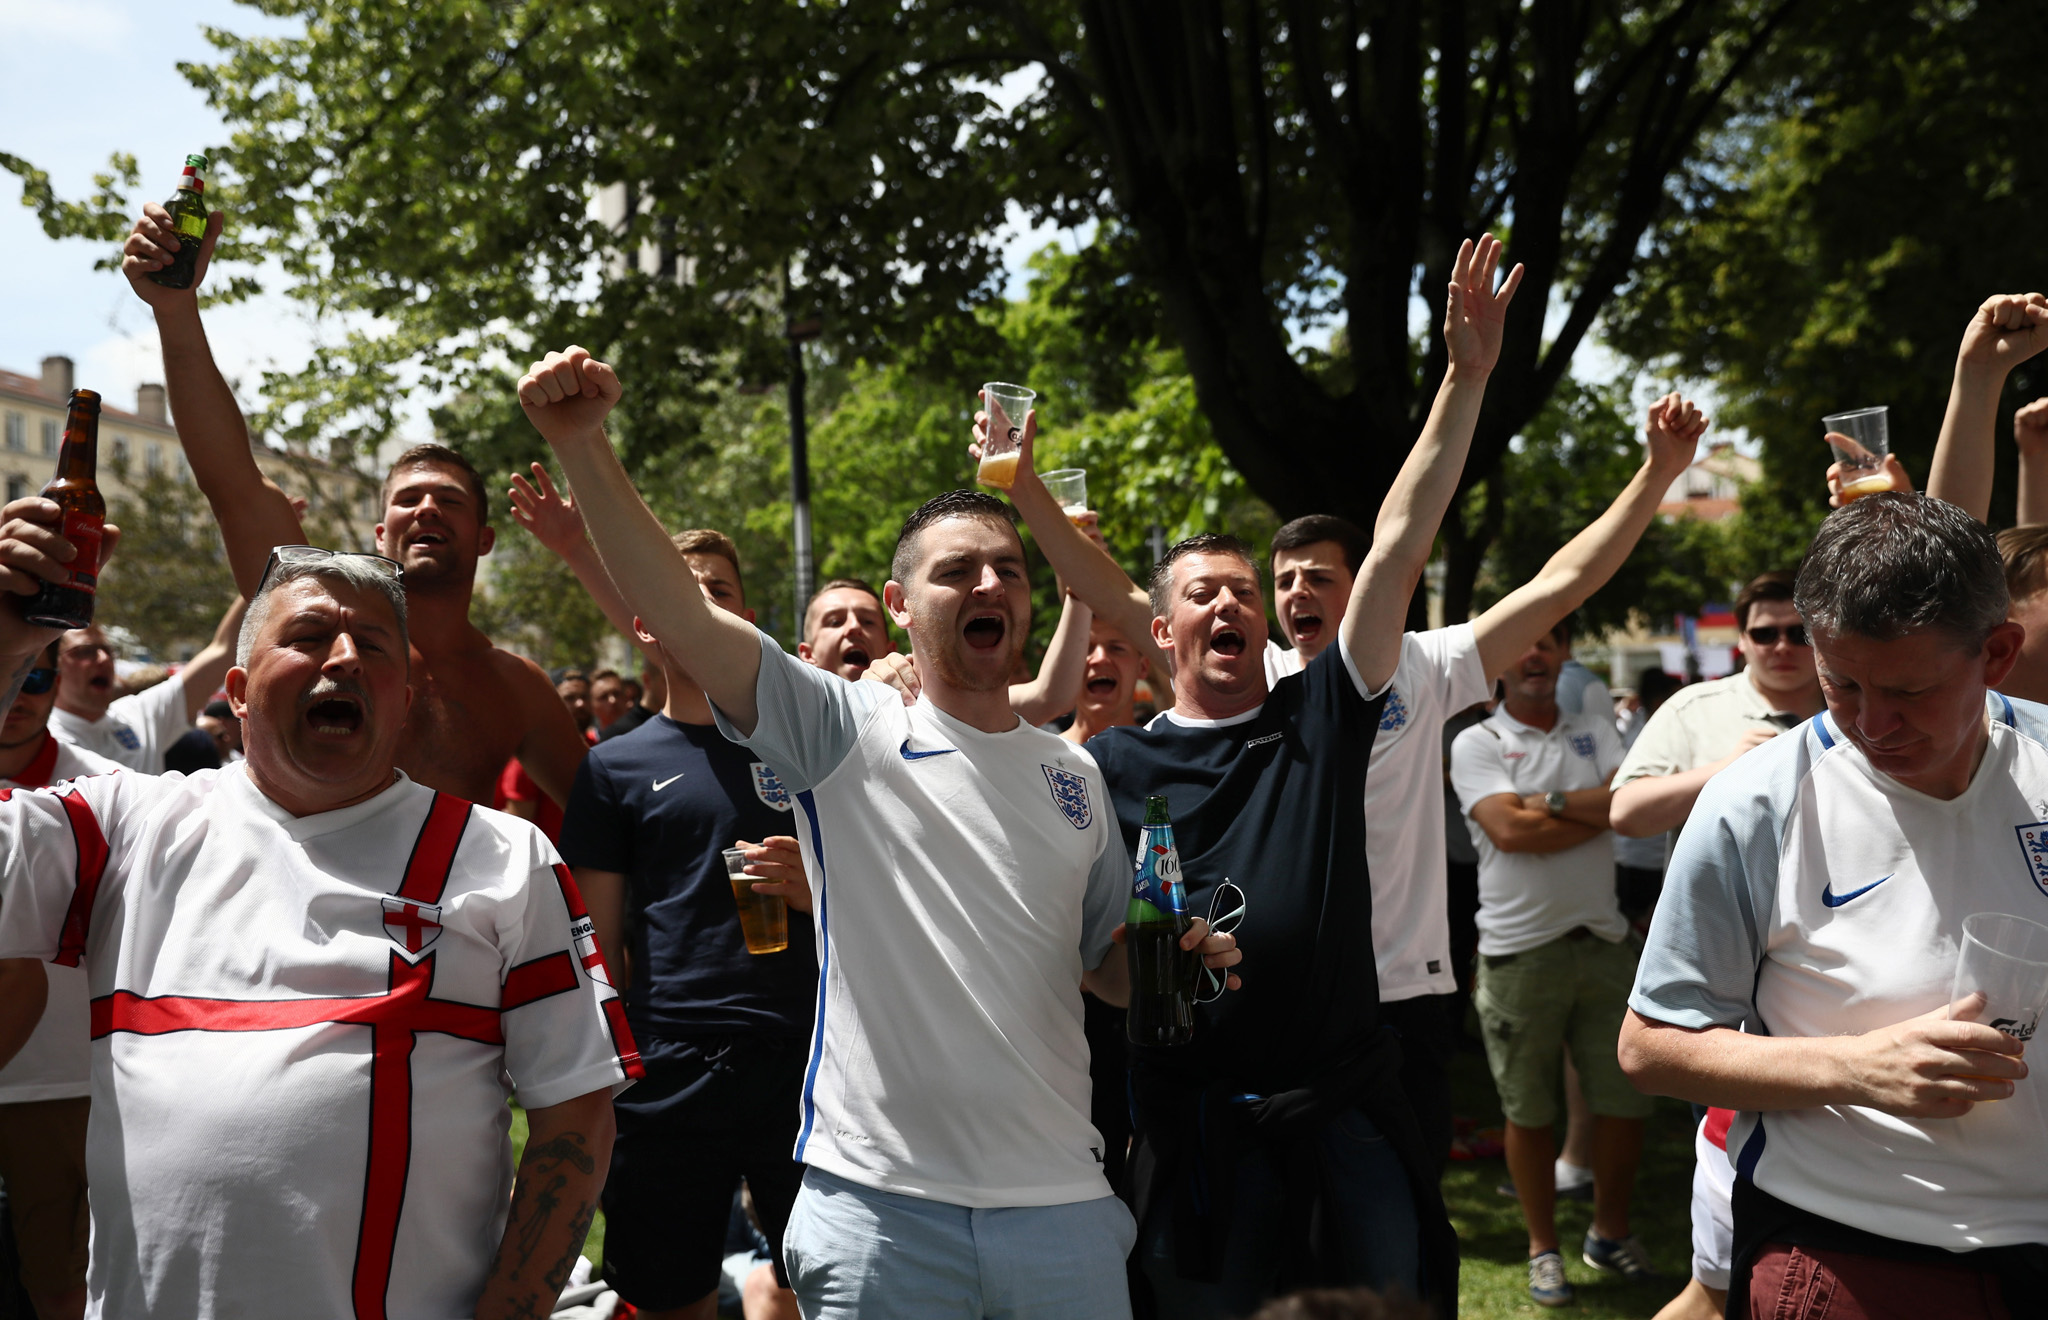 SAINT-ETIENNE, FRANCE - JUNE 20: England fans sing as they gather ahead of today's England v Slovakia UEFA Euros 2016 Group B match, on June 20, 2016 in Saint-Etienne, France. Following a draw against Russia in Marseille and a win against Wales in Lille, England fans have travelled to the central French city for the final group game against Slovakia.  (Photo by Carl Court/Getty Images)